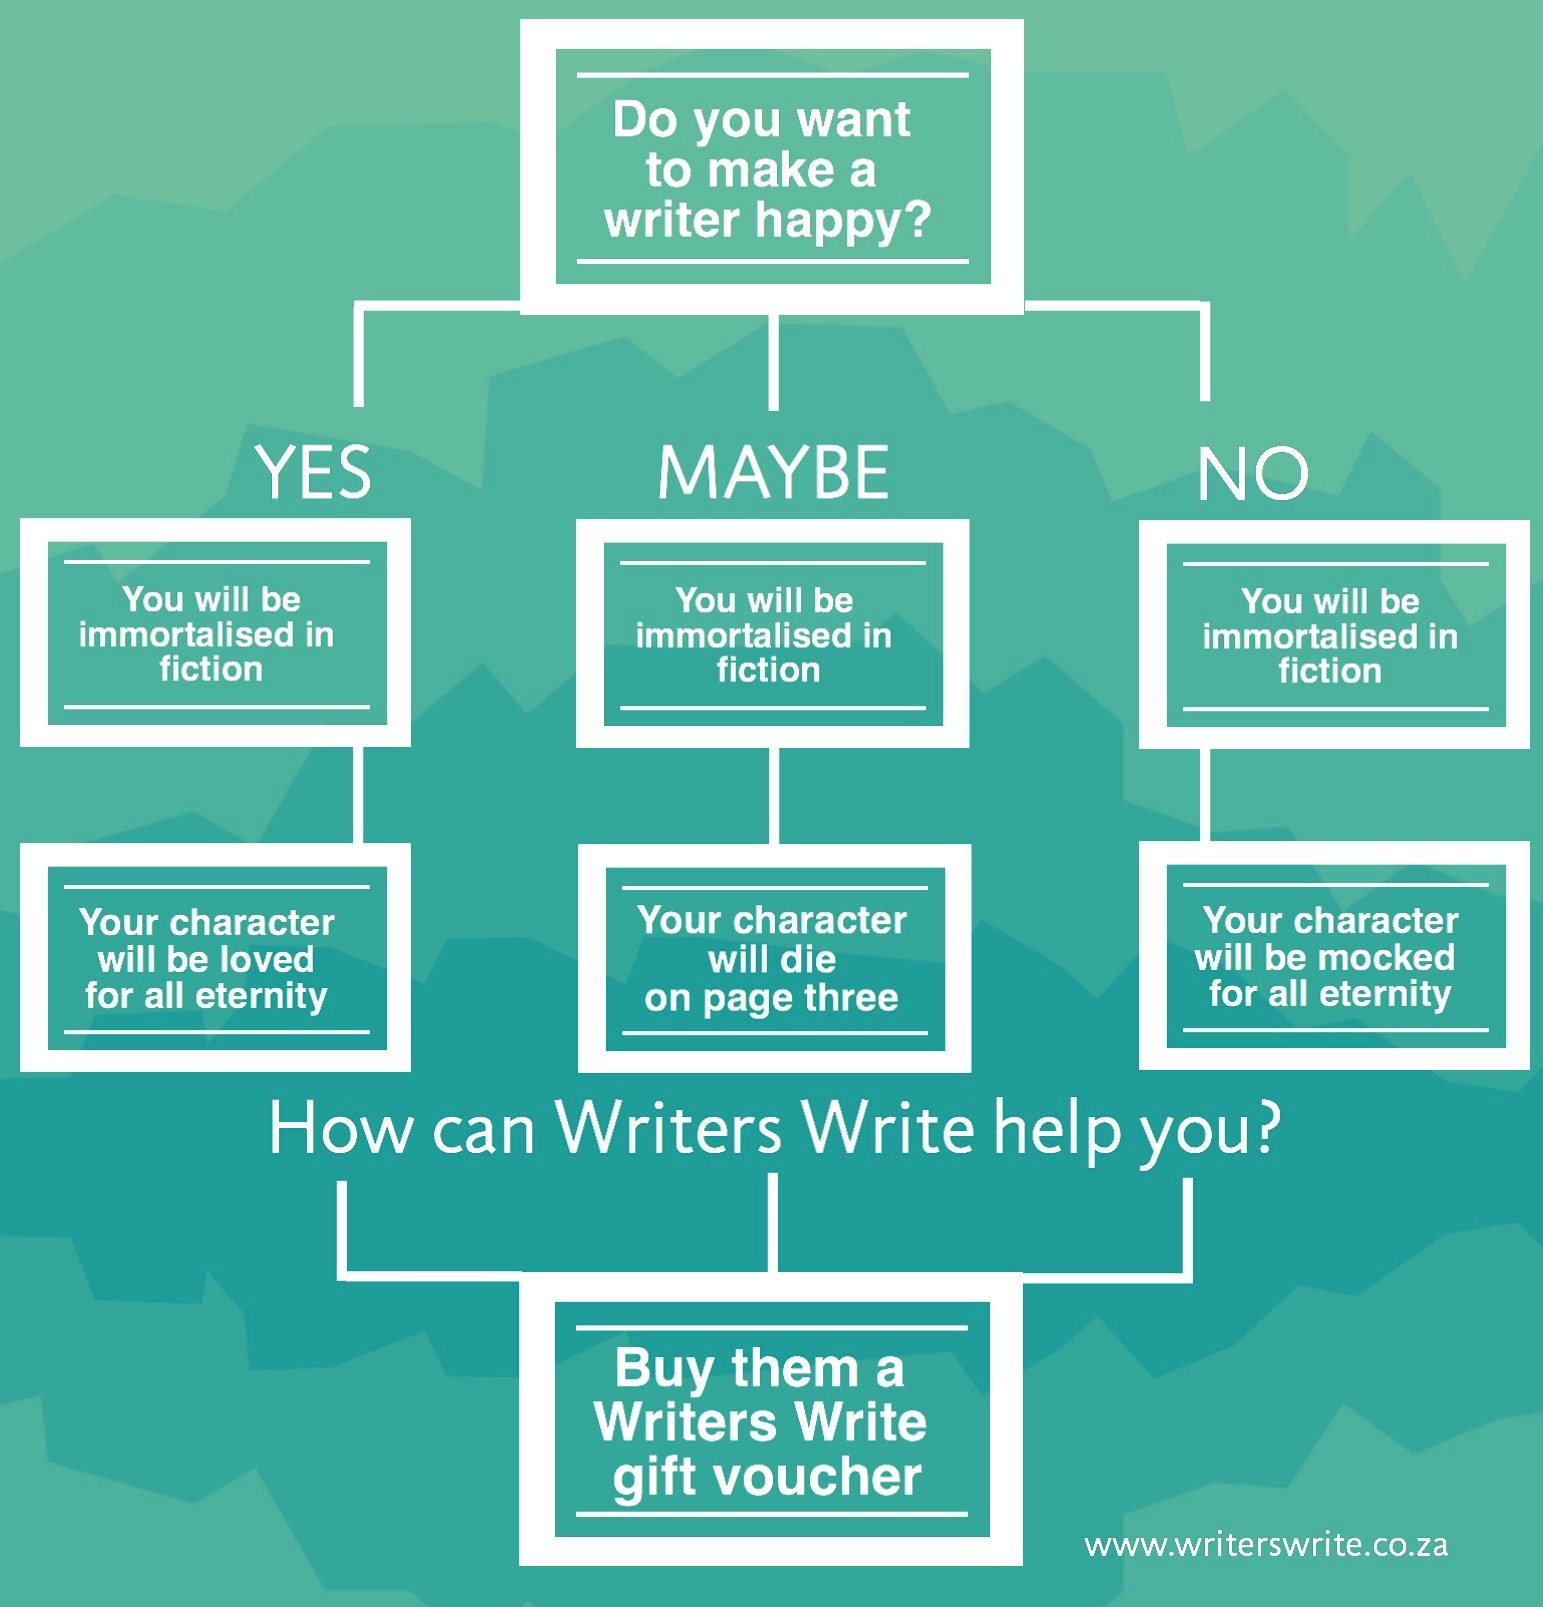 Do You Want To Make A Writer Happy?